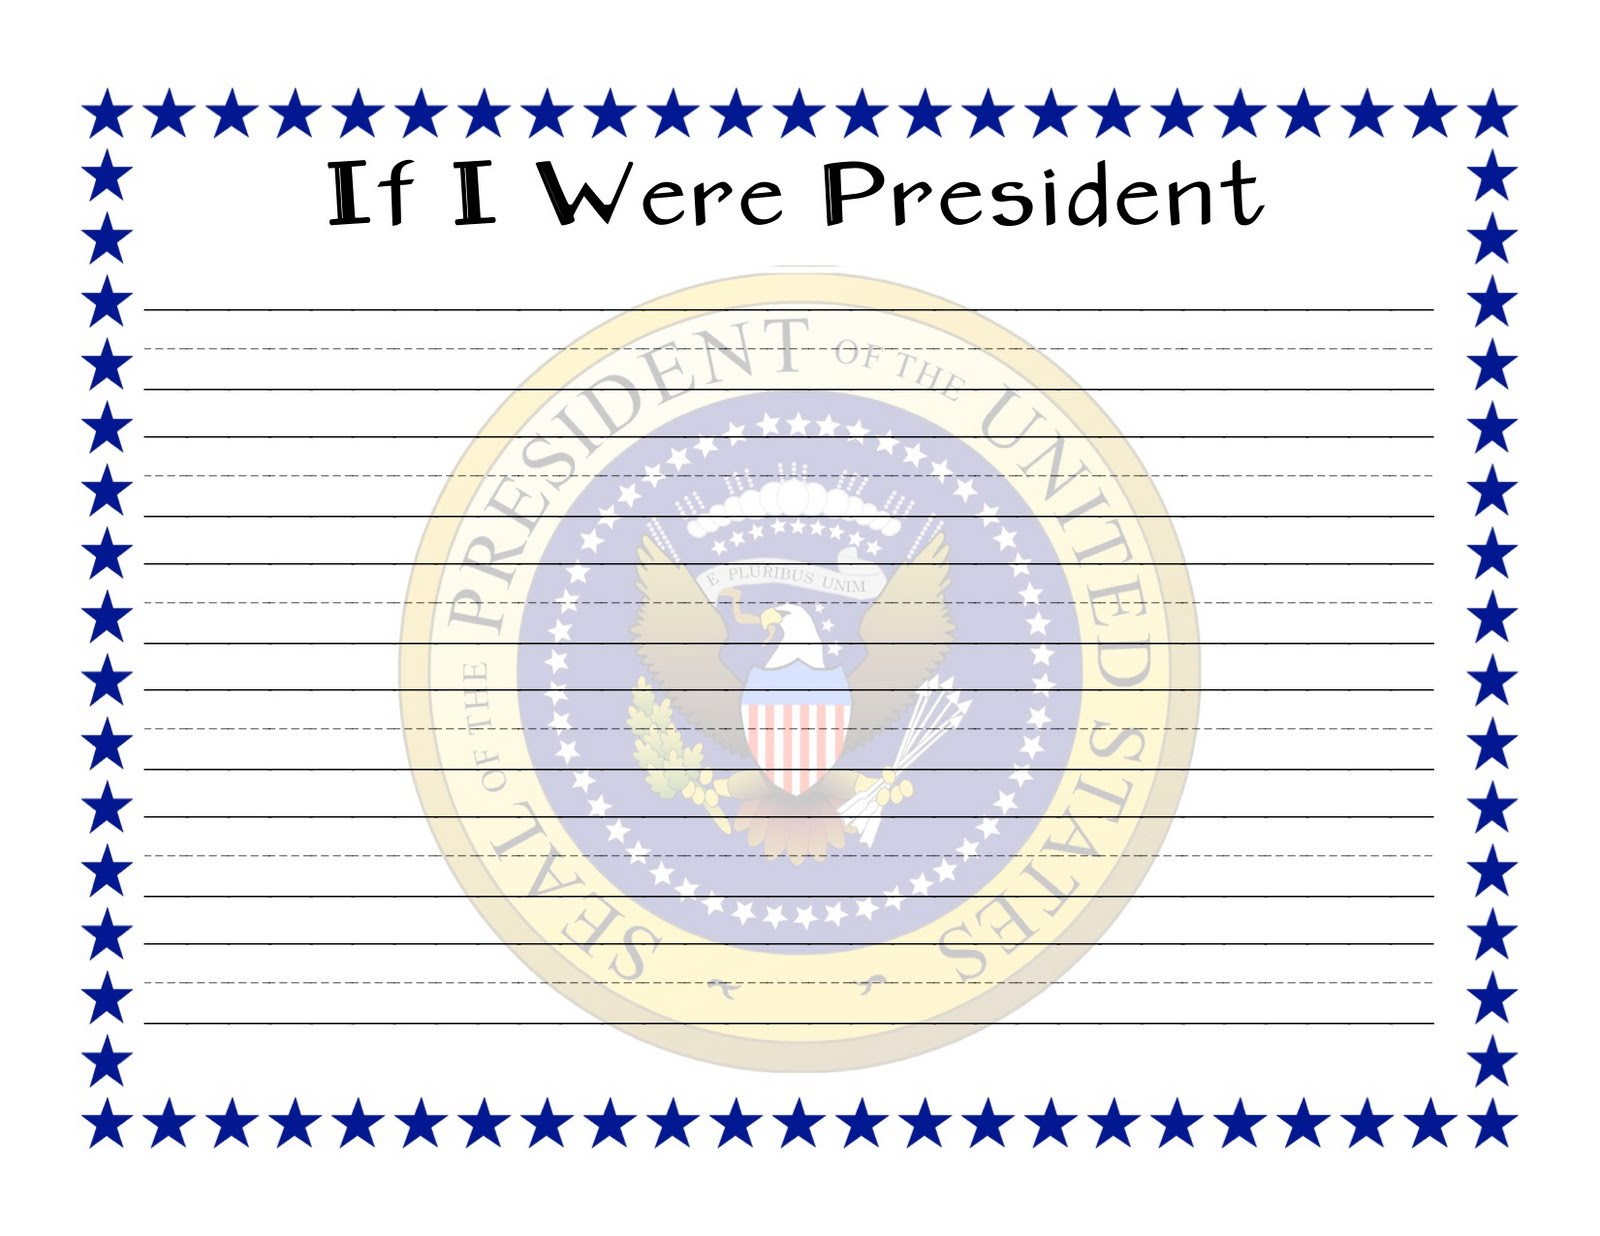 if i was the president essay introducing yourself essay creative  essay on if i would be president essay on if i were the if i were